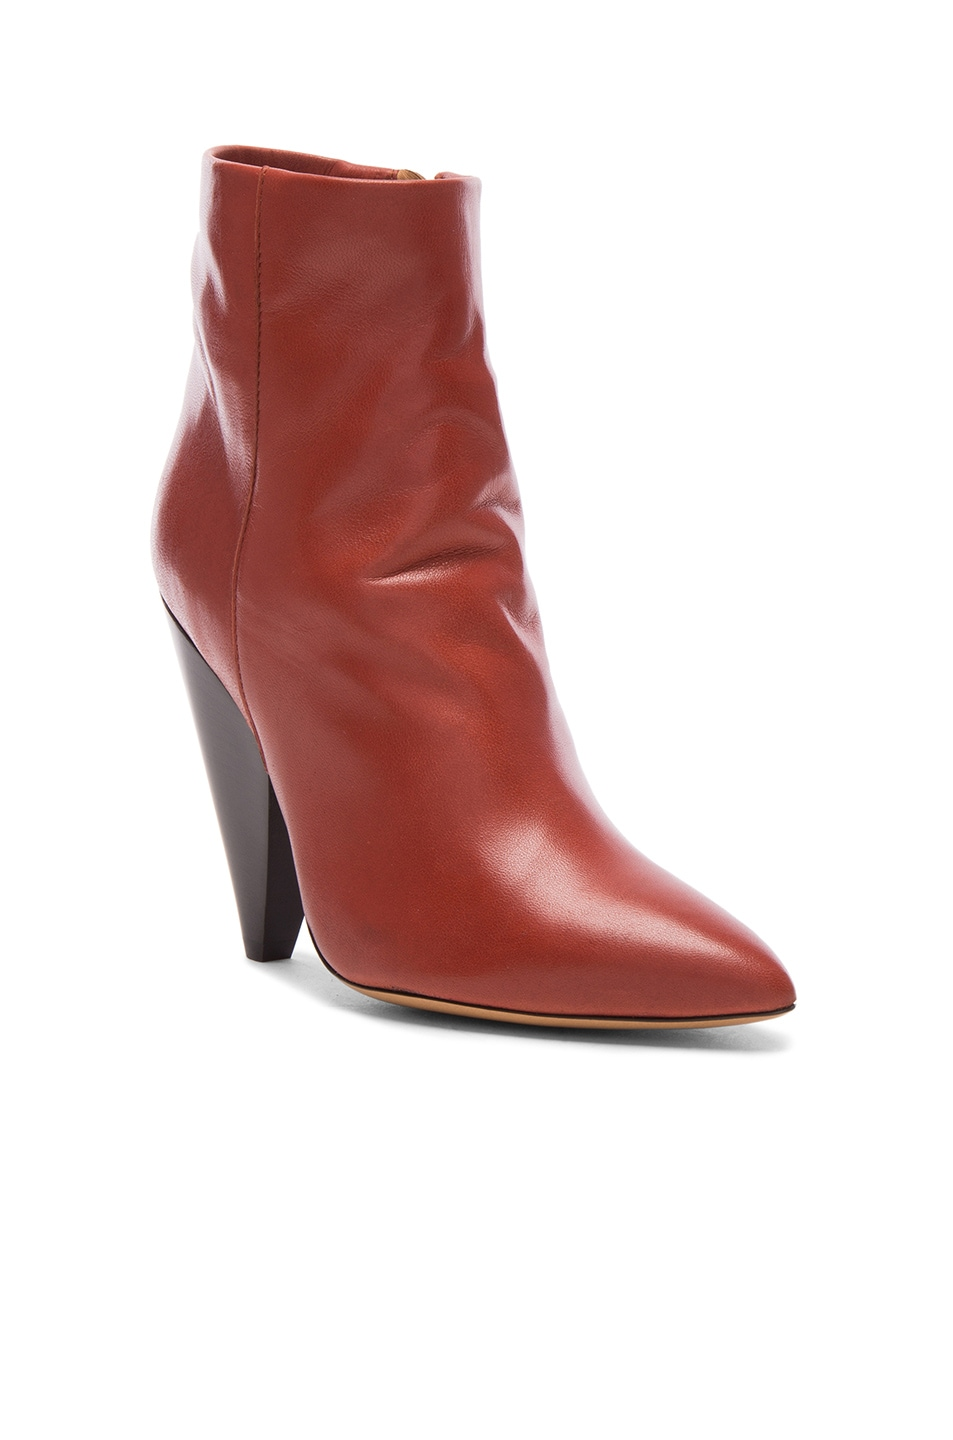 Image 2 of Isabel Marant Leather Leydoni Booties in Rust